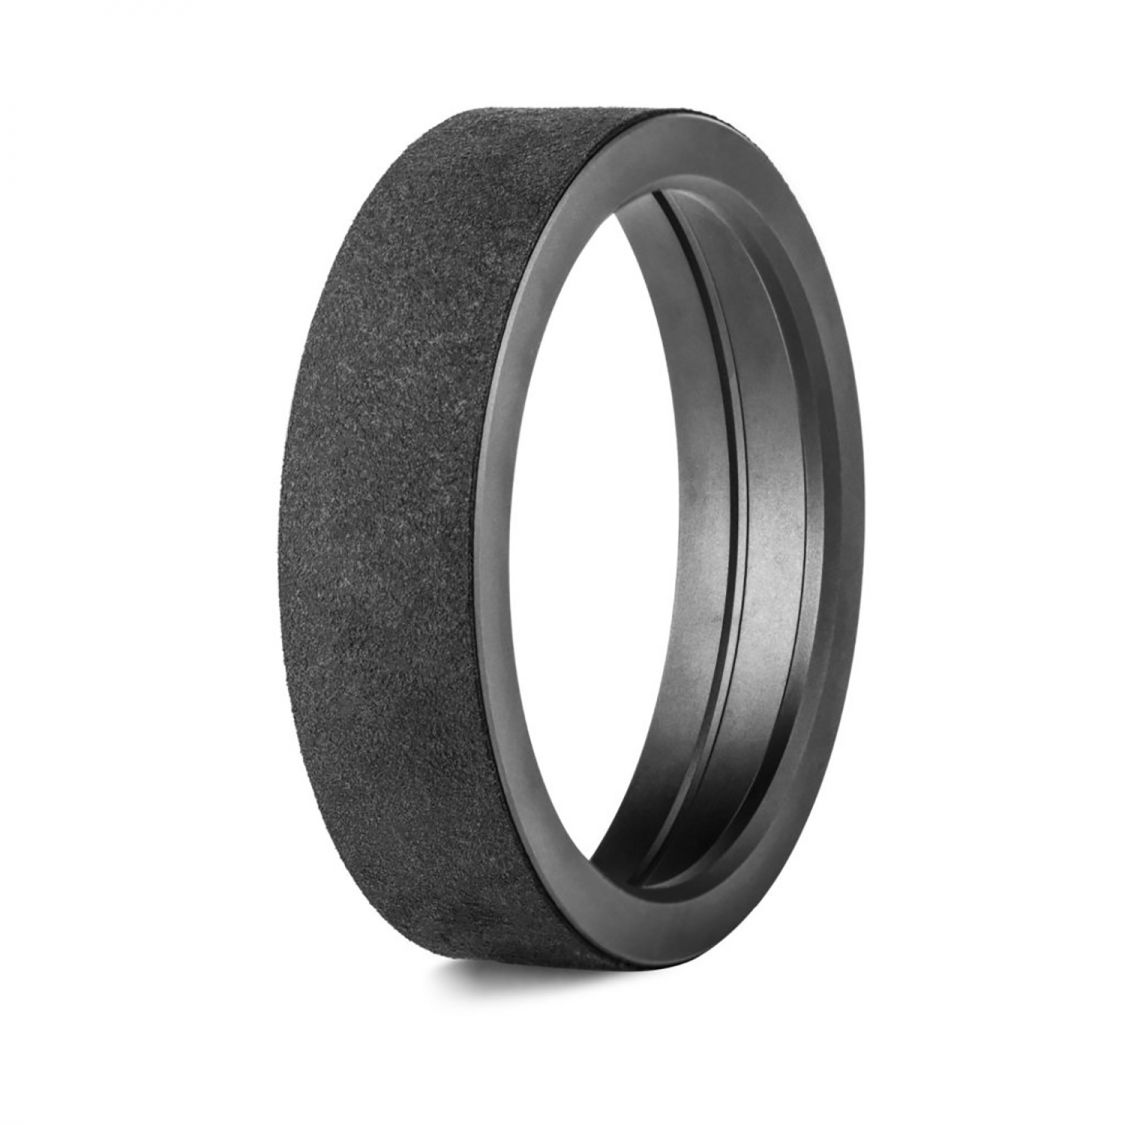 NiSi 77mm Filter Adapter Ring for S5 (Nikon 14-24mm and Tamron 15-30)